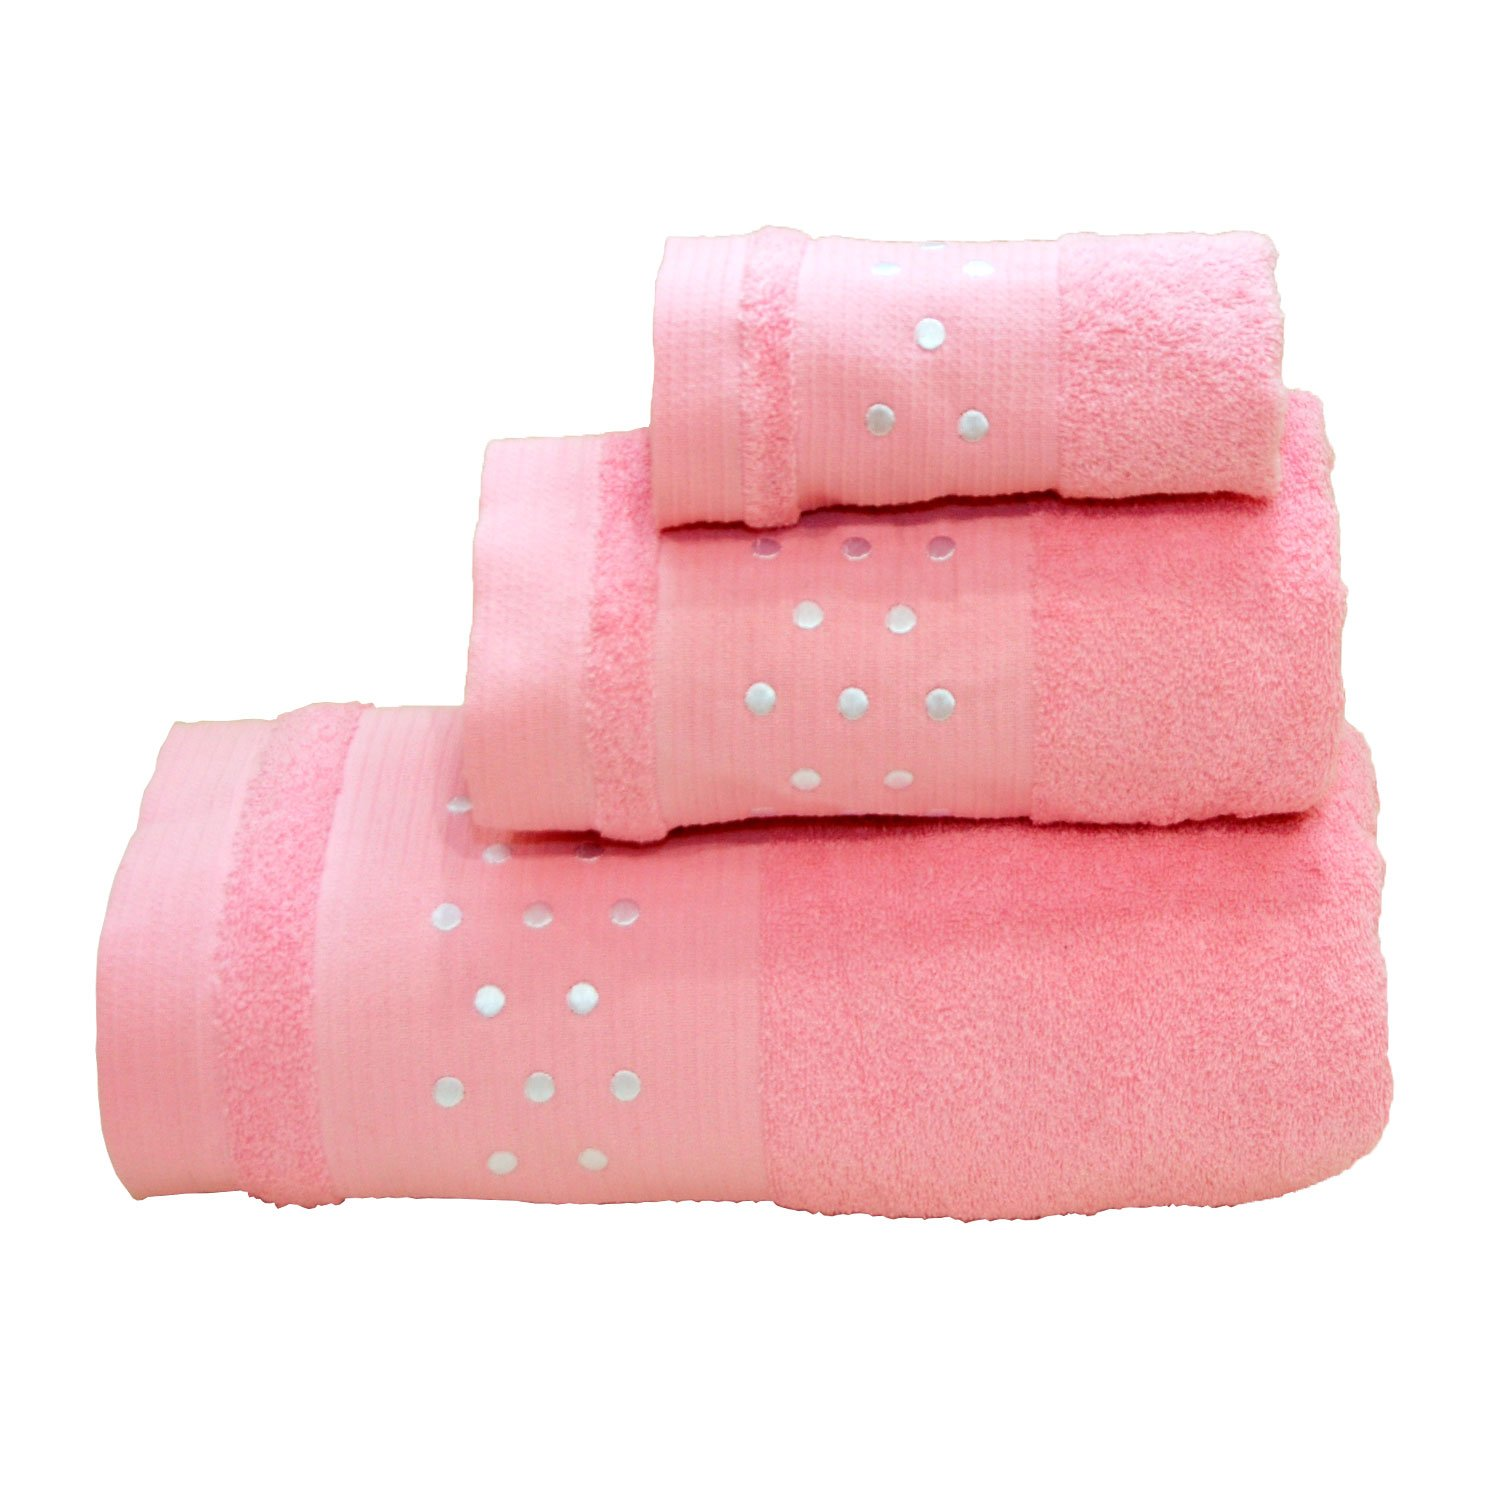 SPOTS BATH TOWELS - 3 PIECES SET - BATH SHEET + HAND TOWEL + FACE TOWEL - PINK W/ WHITE Maria Teixeira e Andrade Lda